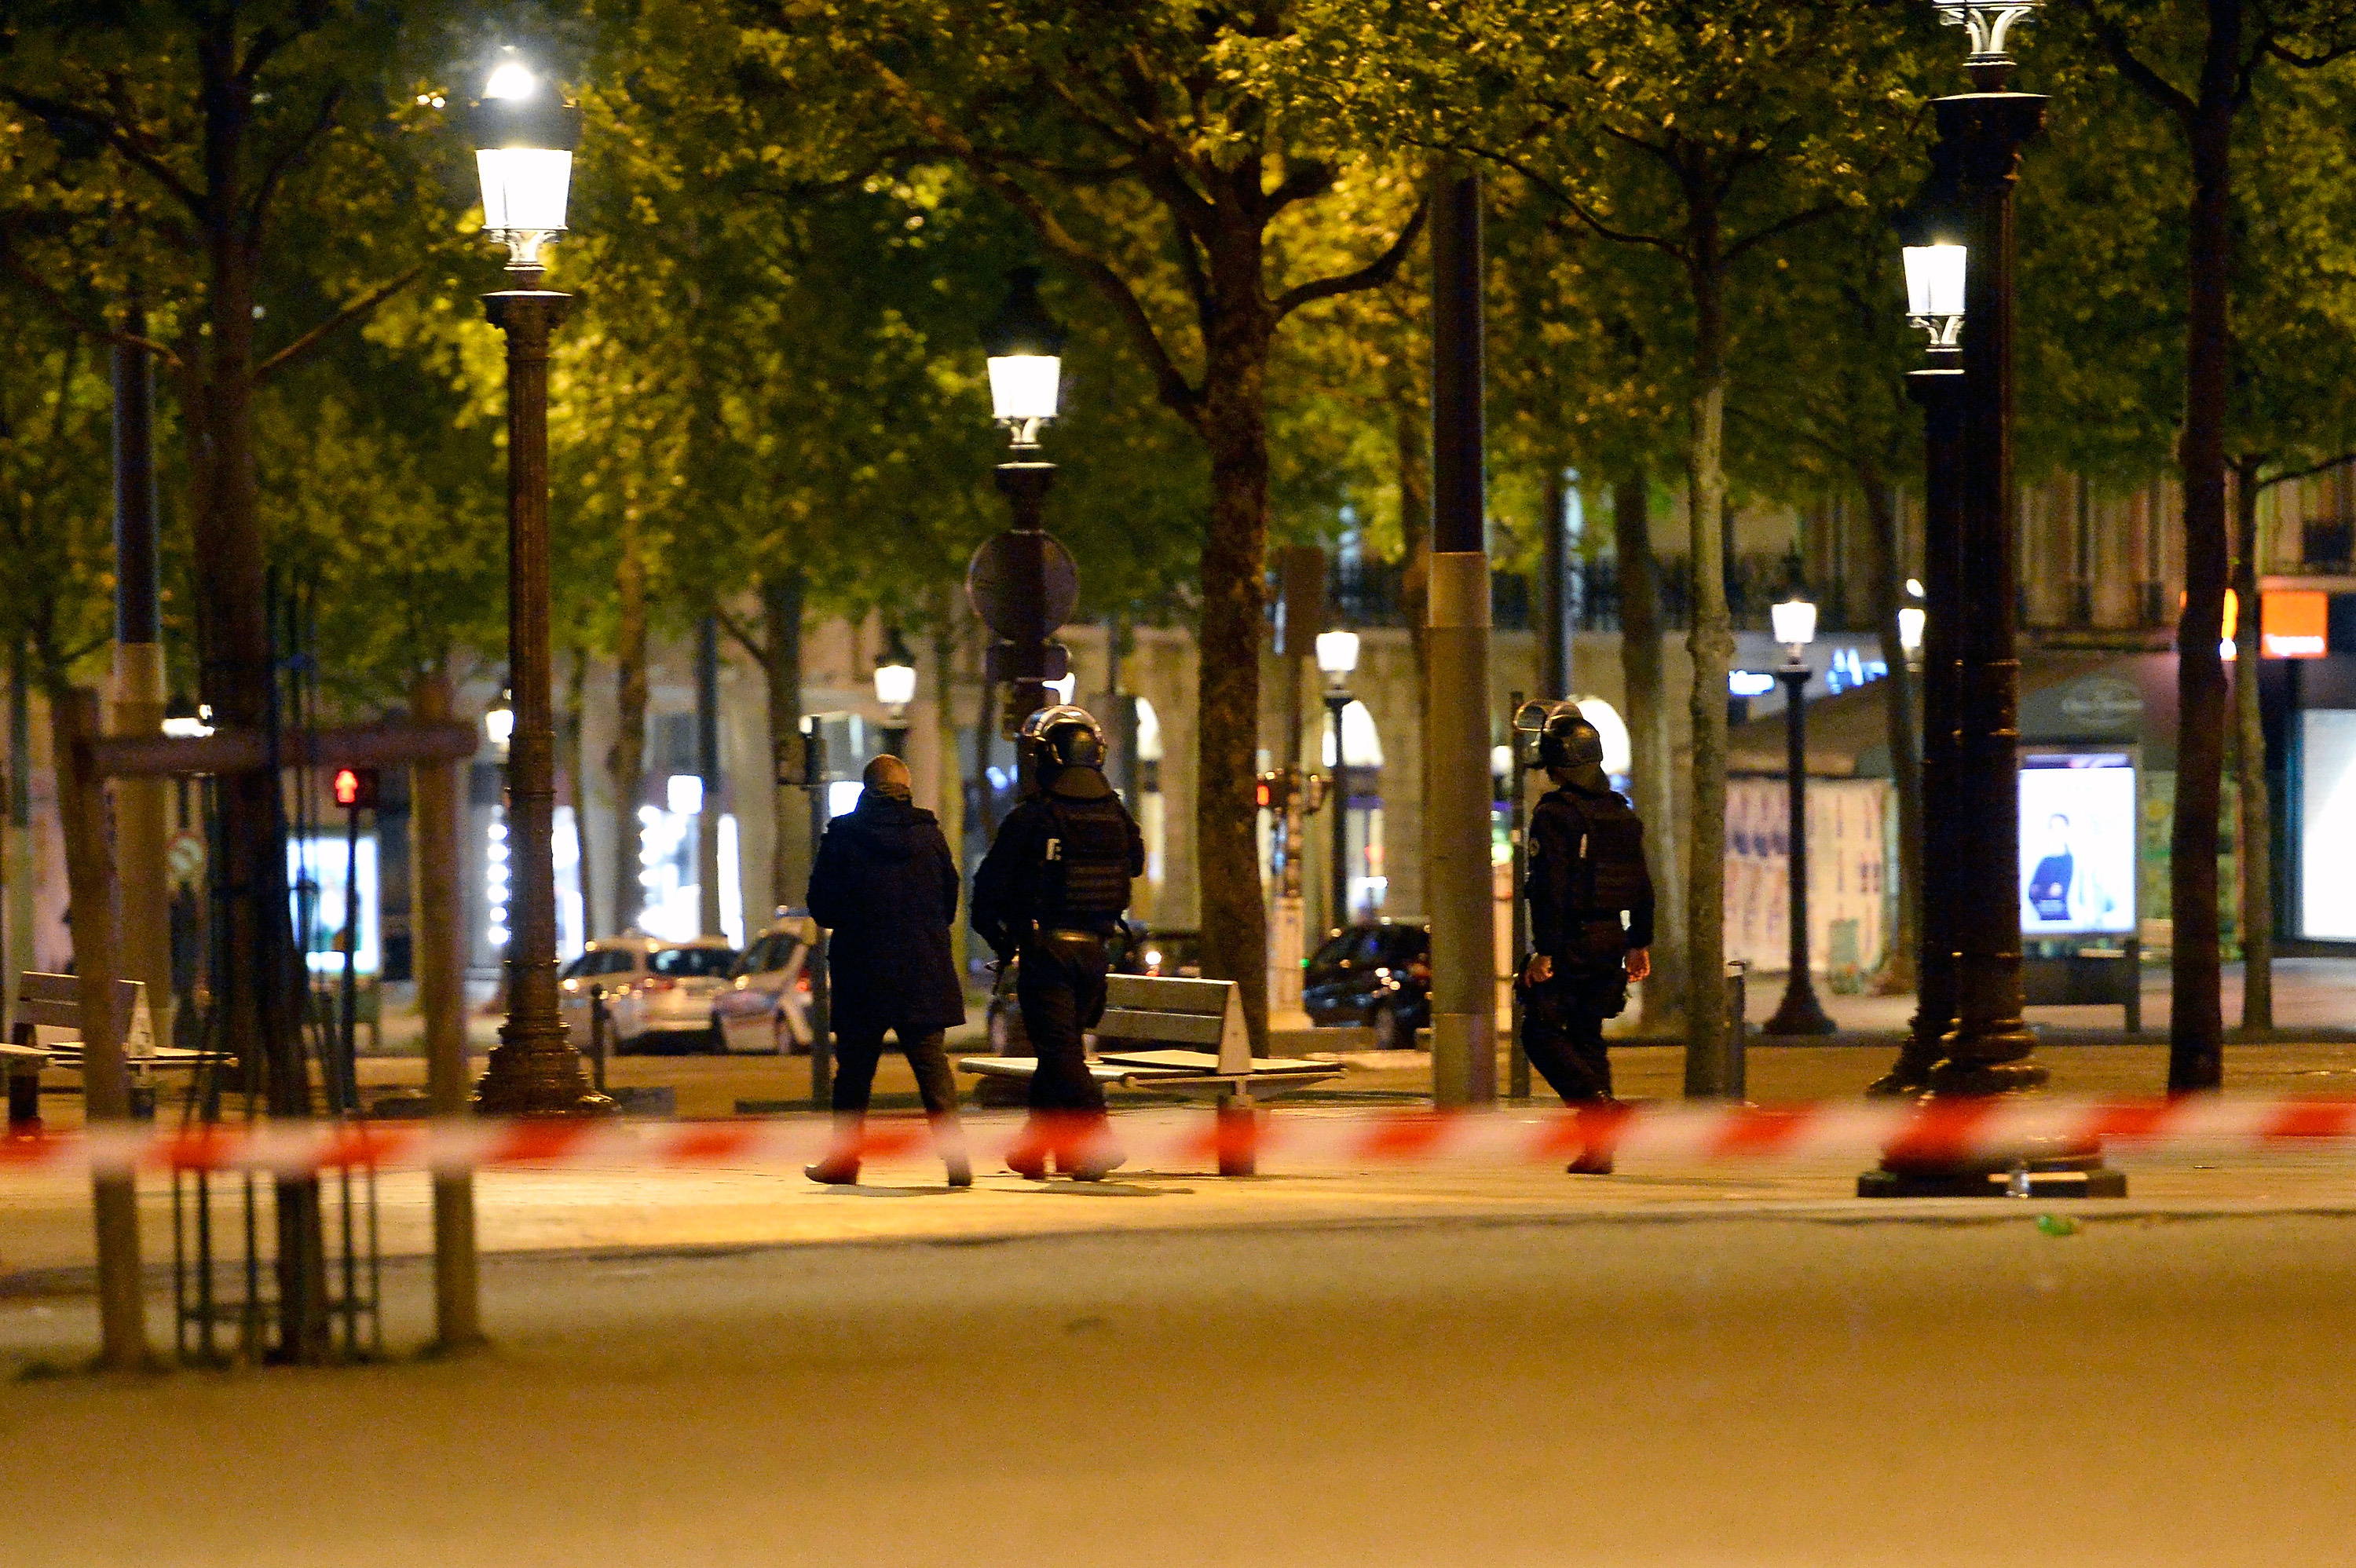 Police officers secure the area after a gunman opened fire on Champs Elysees on April 20, 2017 in Paris, France. (Photo by Aurelien Meunier/Getty Images)